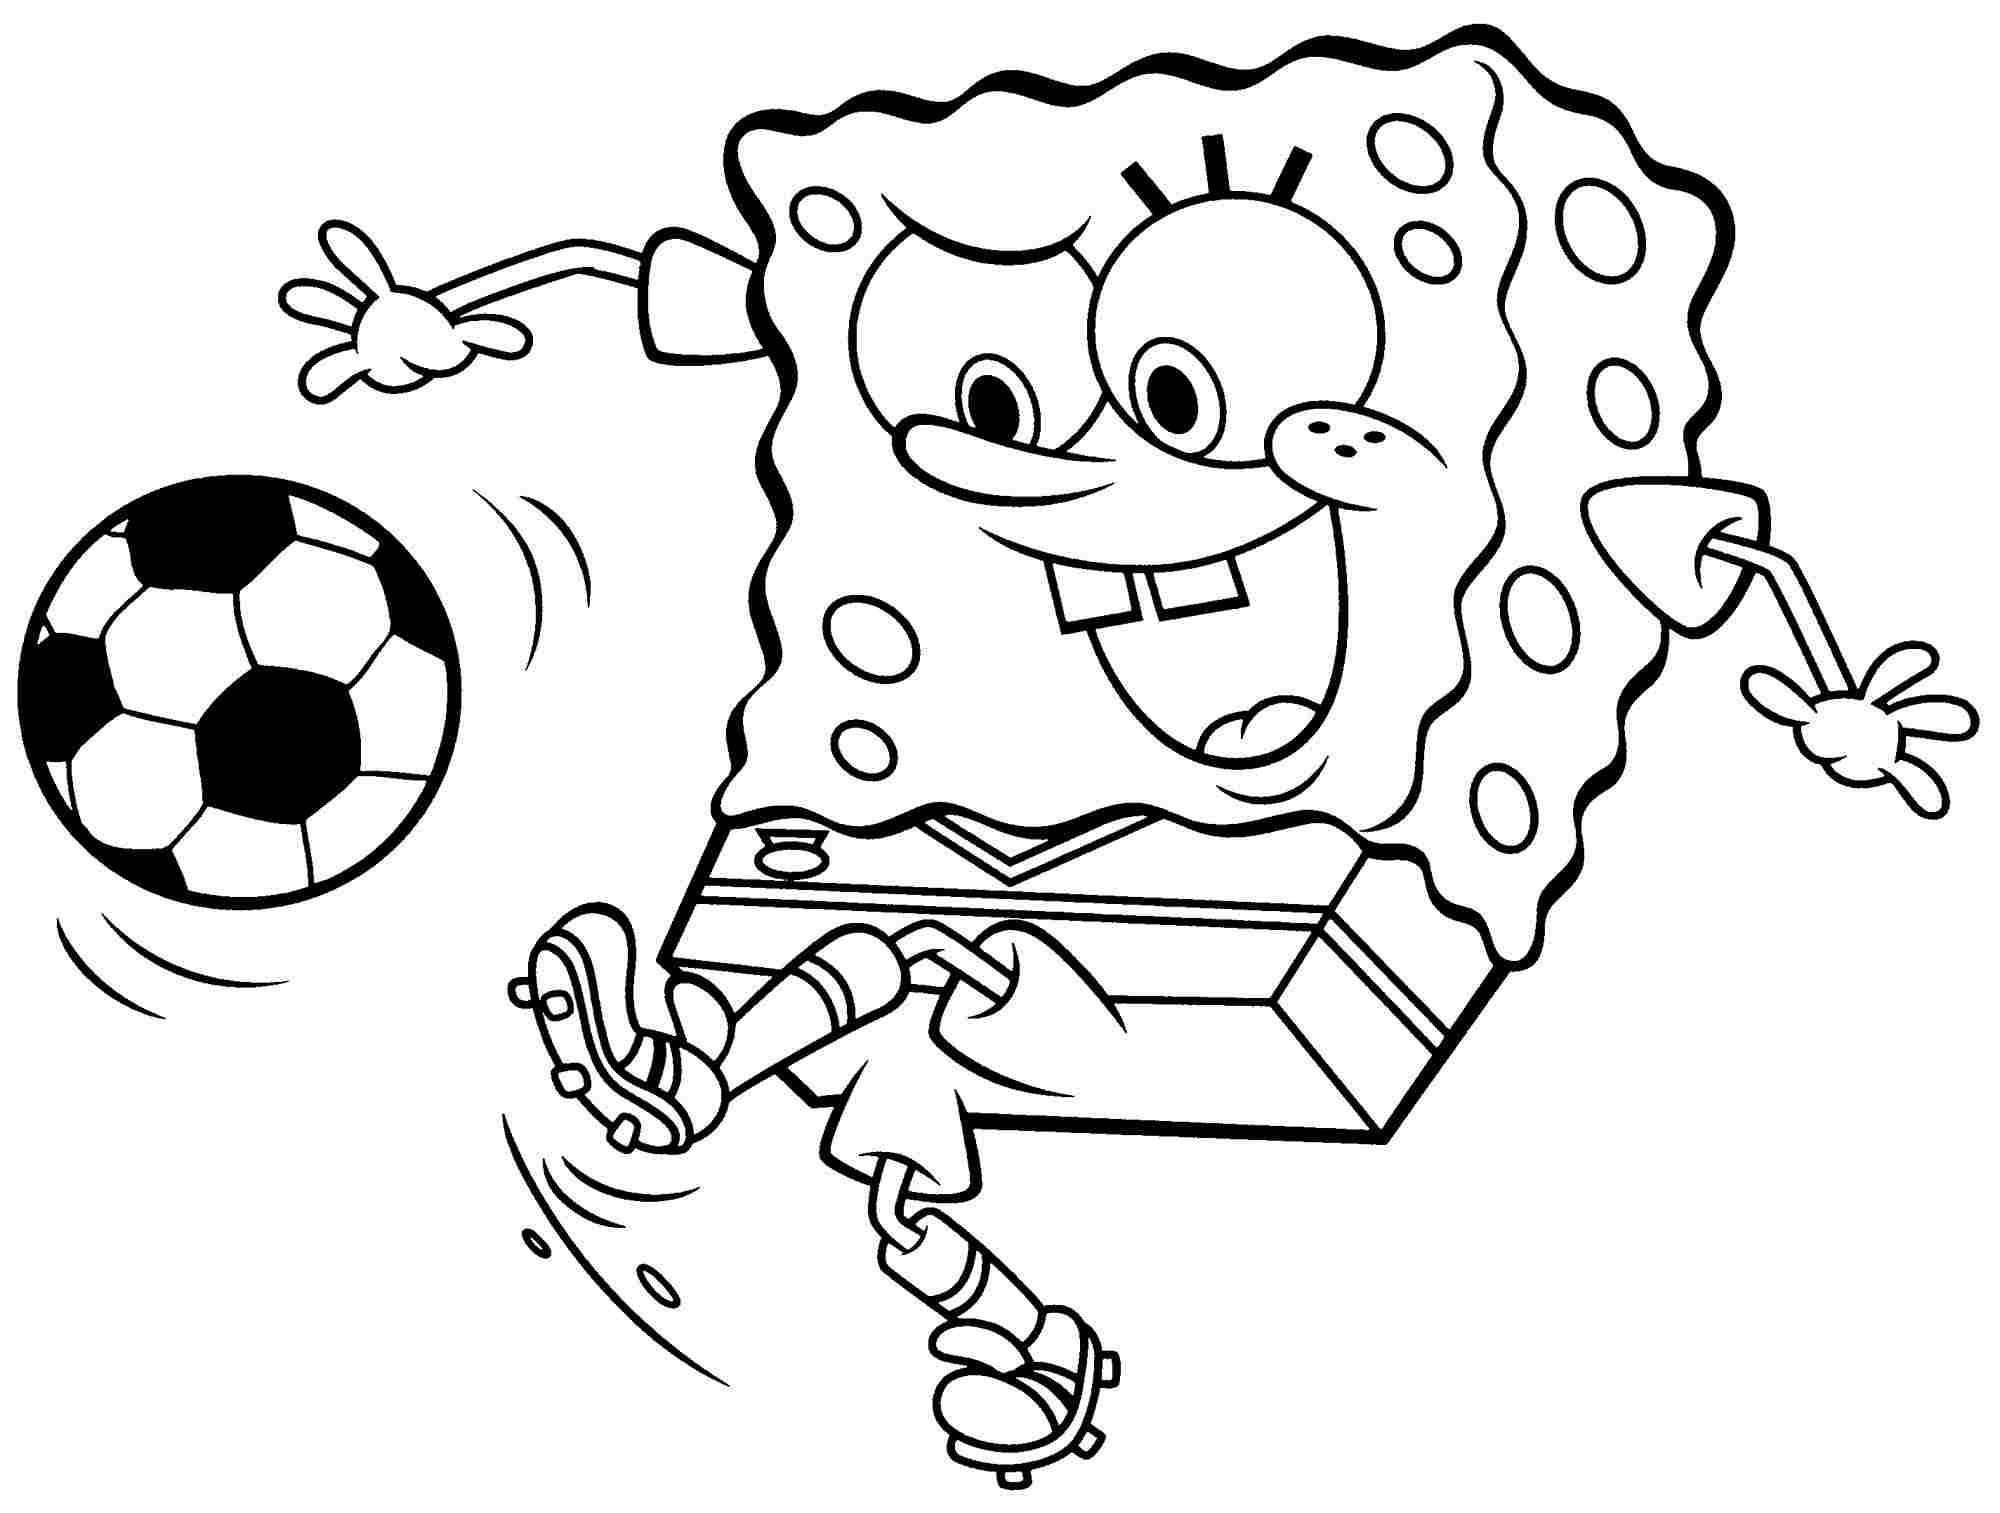 SpongeBob Coloring Pages | SpongeBob Coloring Pages | Pinterest ...